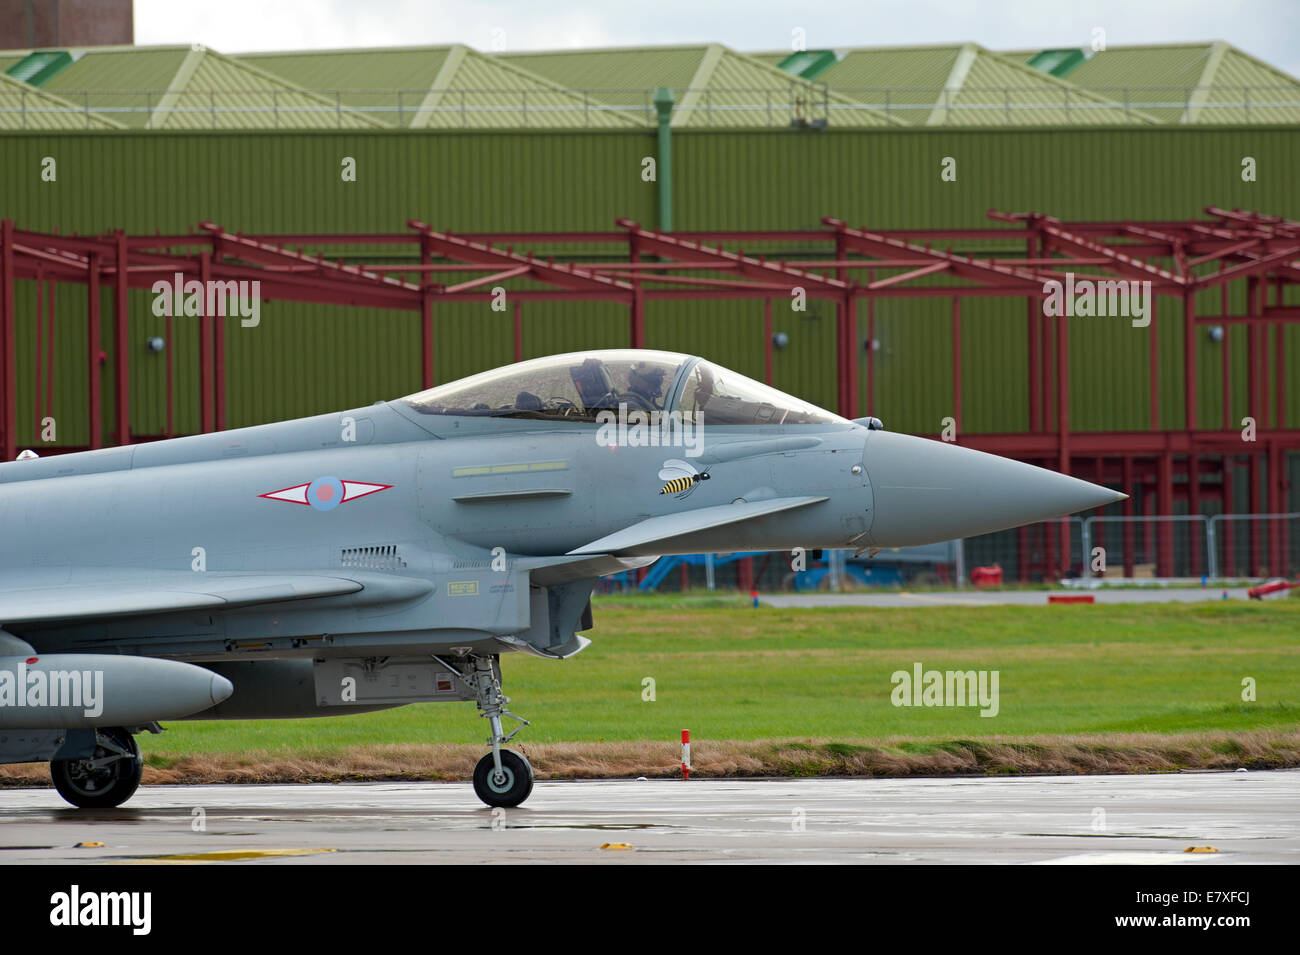 Eurofighter Typhoon FRG4 ZK335 ready for take off at RAF Lossiemouth, Morayshire.  SCO 9124 - Stock Image